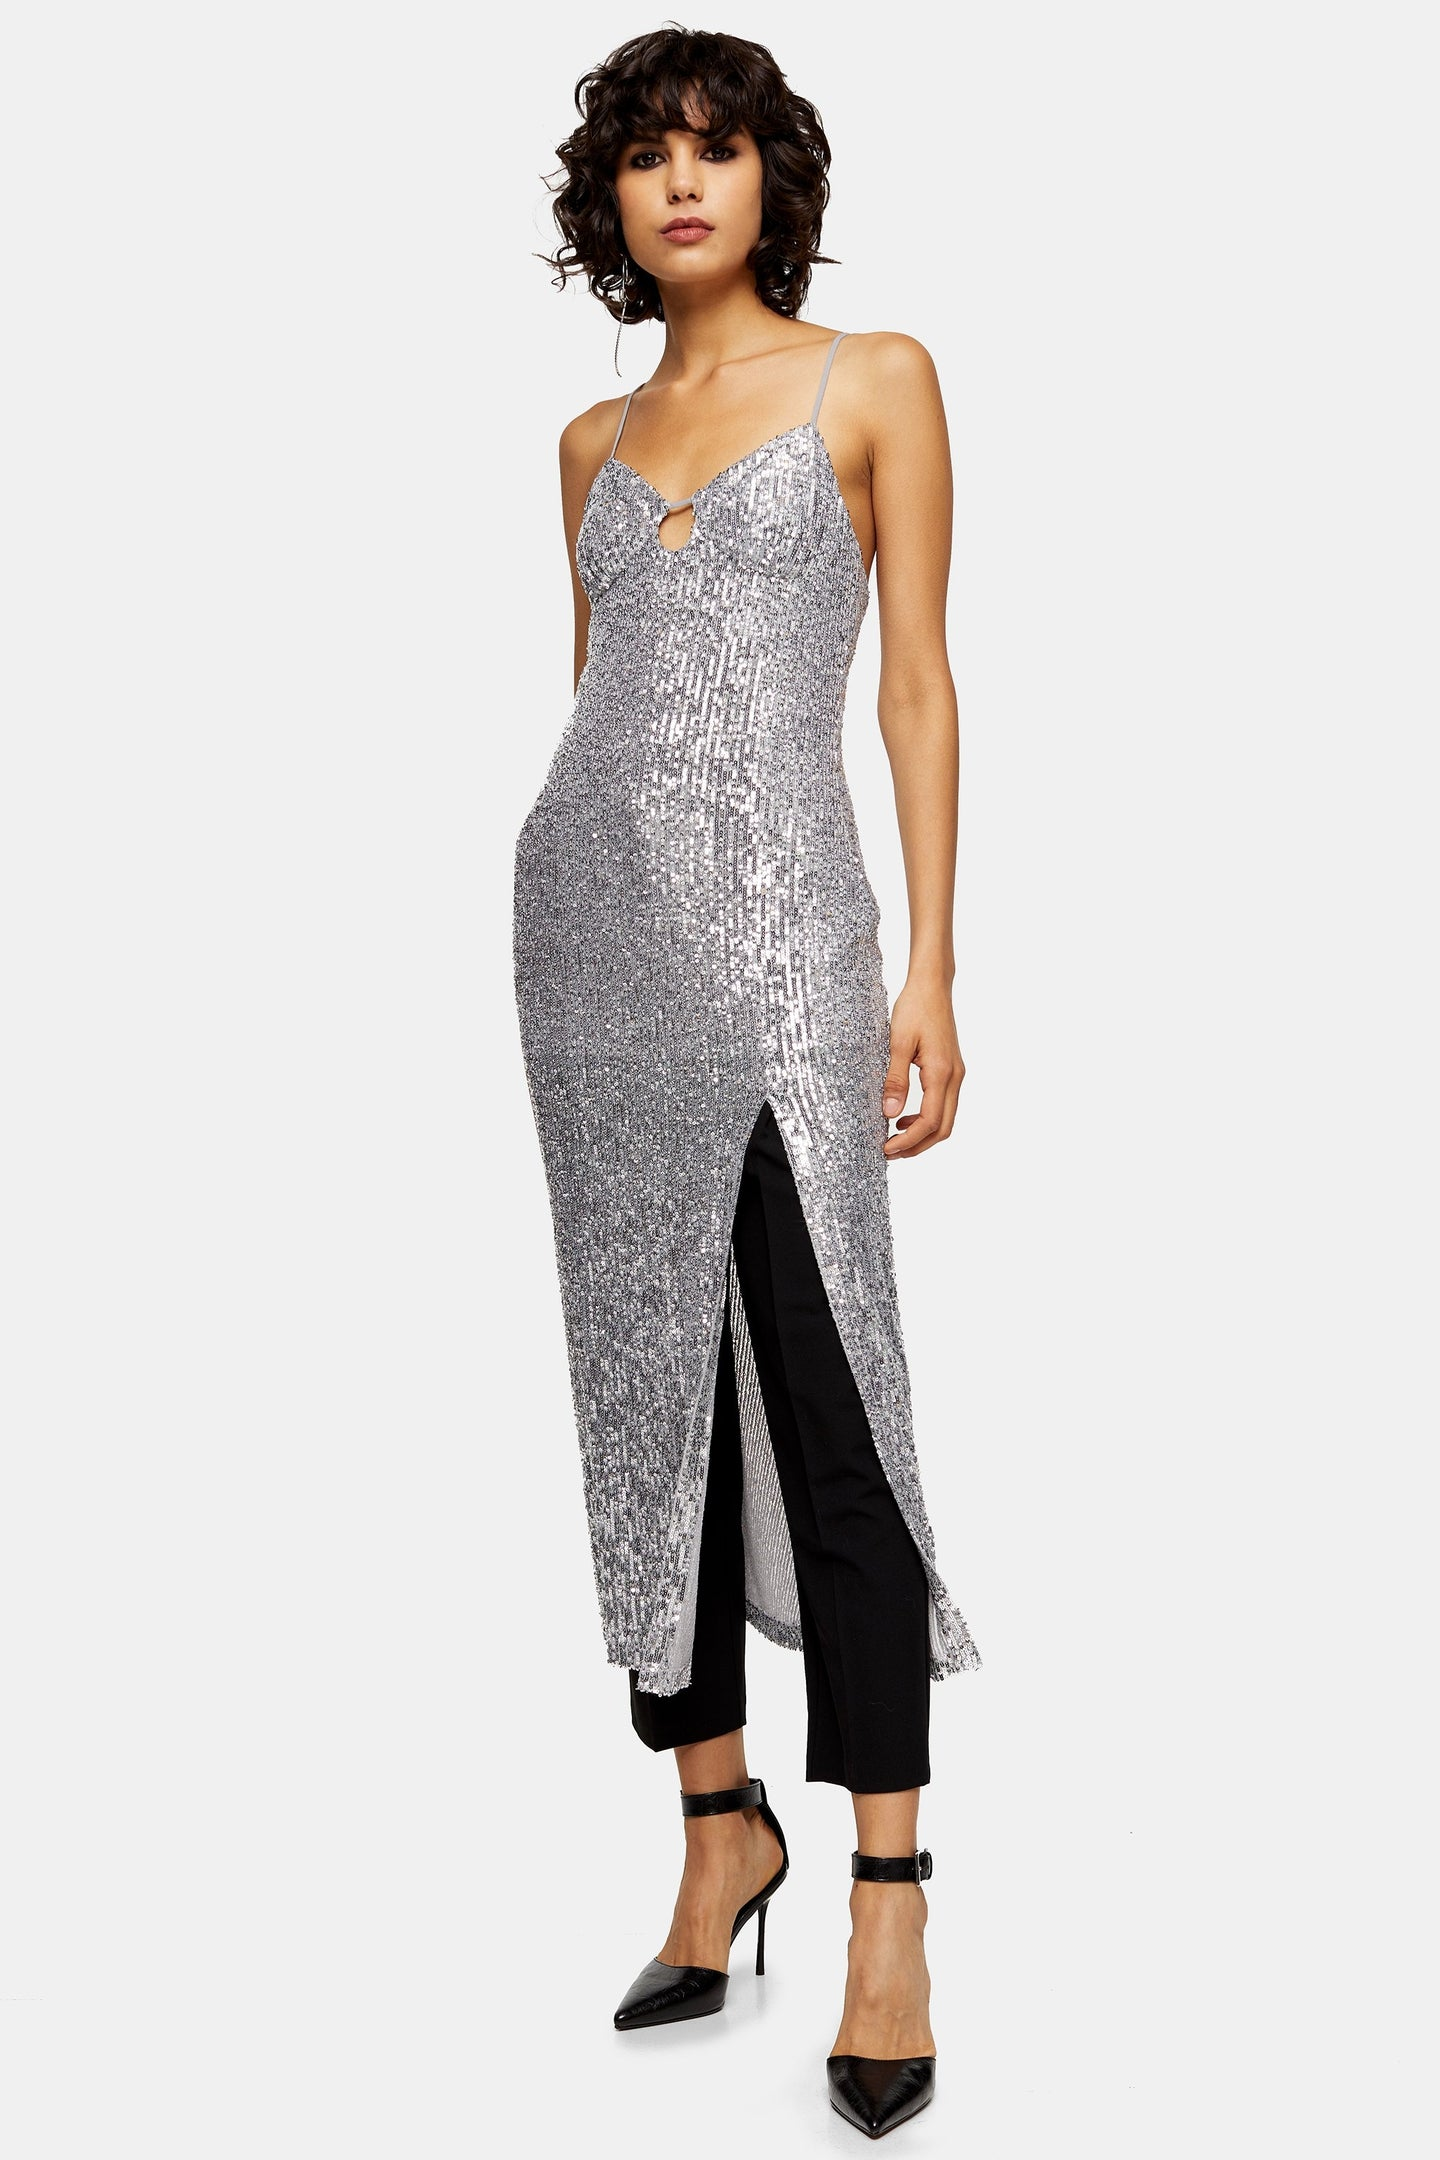 Top Shop Silver Sequin Keyhole Midi Dress